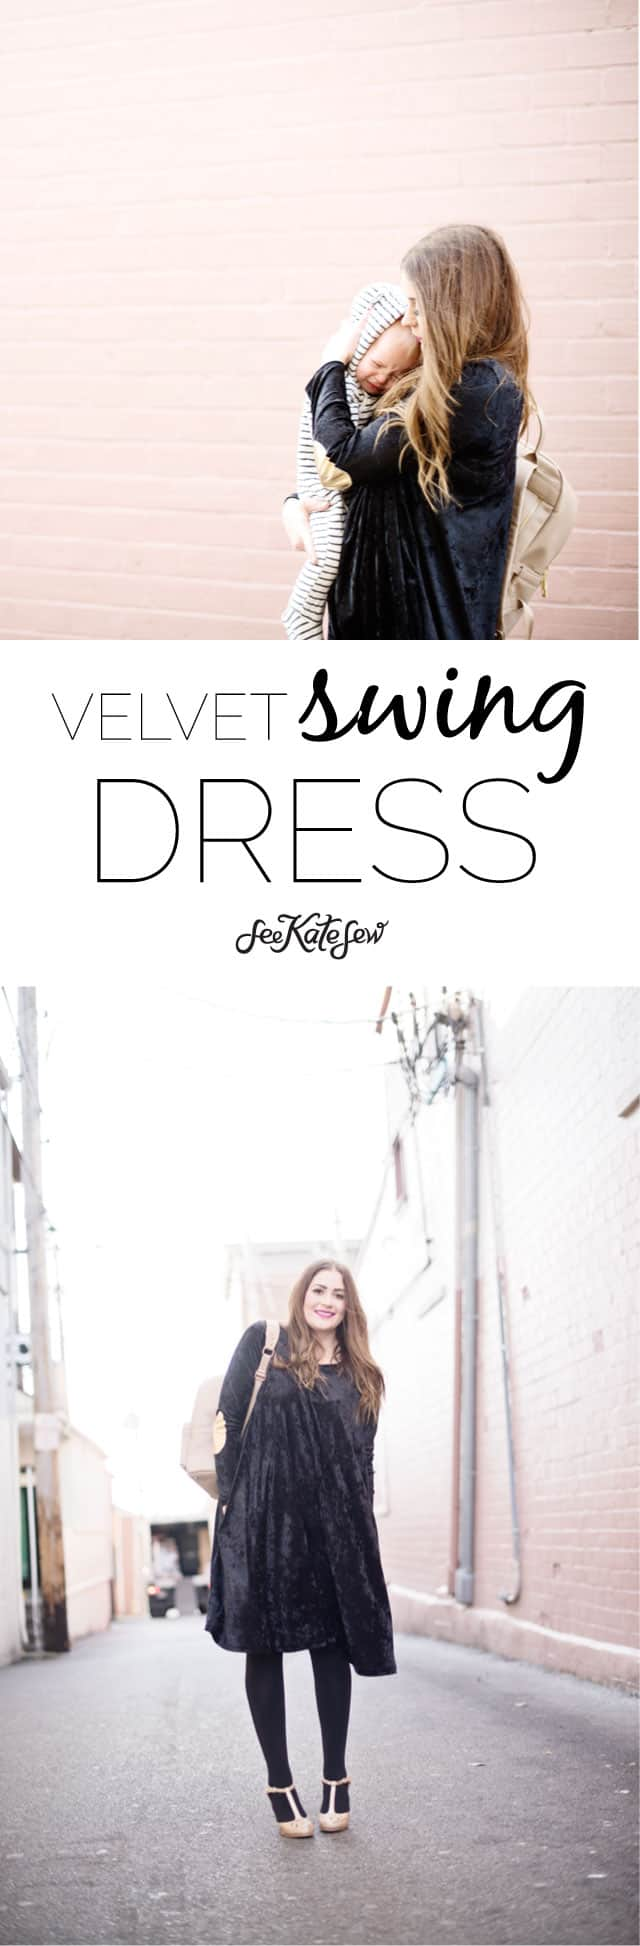 Velvet Swing Dress Pattern | NYE black velvet + gold pleather dress | diy dress | sewing clothing | diy clothing tips | how to sew a crushed velvet dress | holiday dress ideas || See Kate Sew #diyclothing #sewingtutorials #handmadeclothing